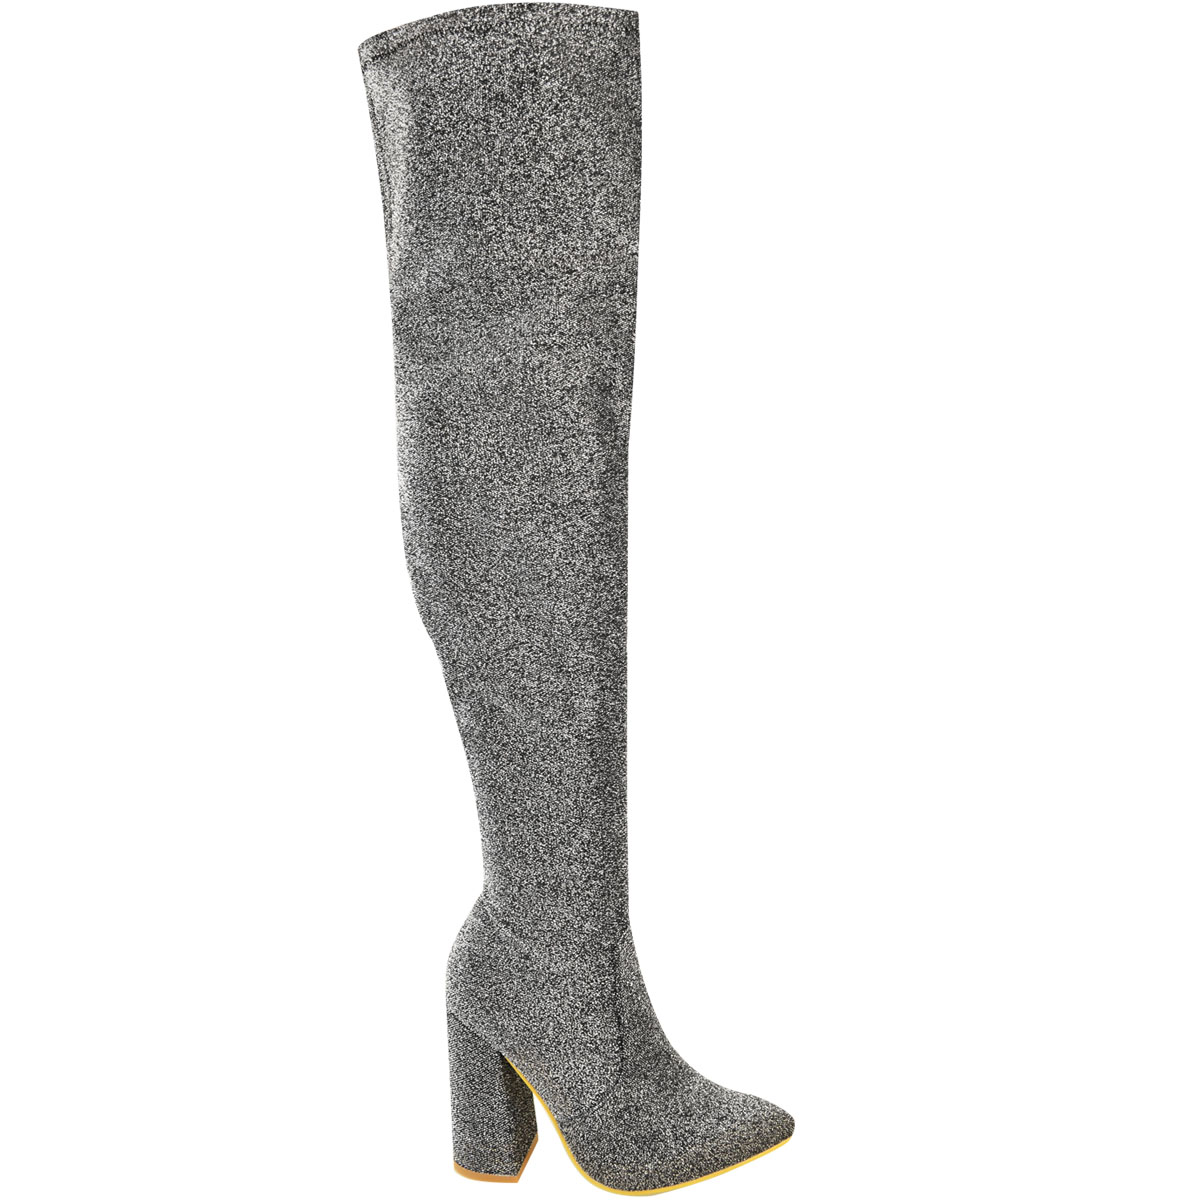 Womens-Ladies-Thigh-High-Boots-Lycra-Over-The-Knee-Pointy-Block-High-Heels-Size Indexbild 19